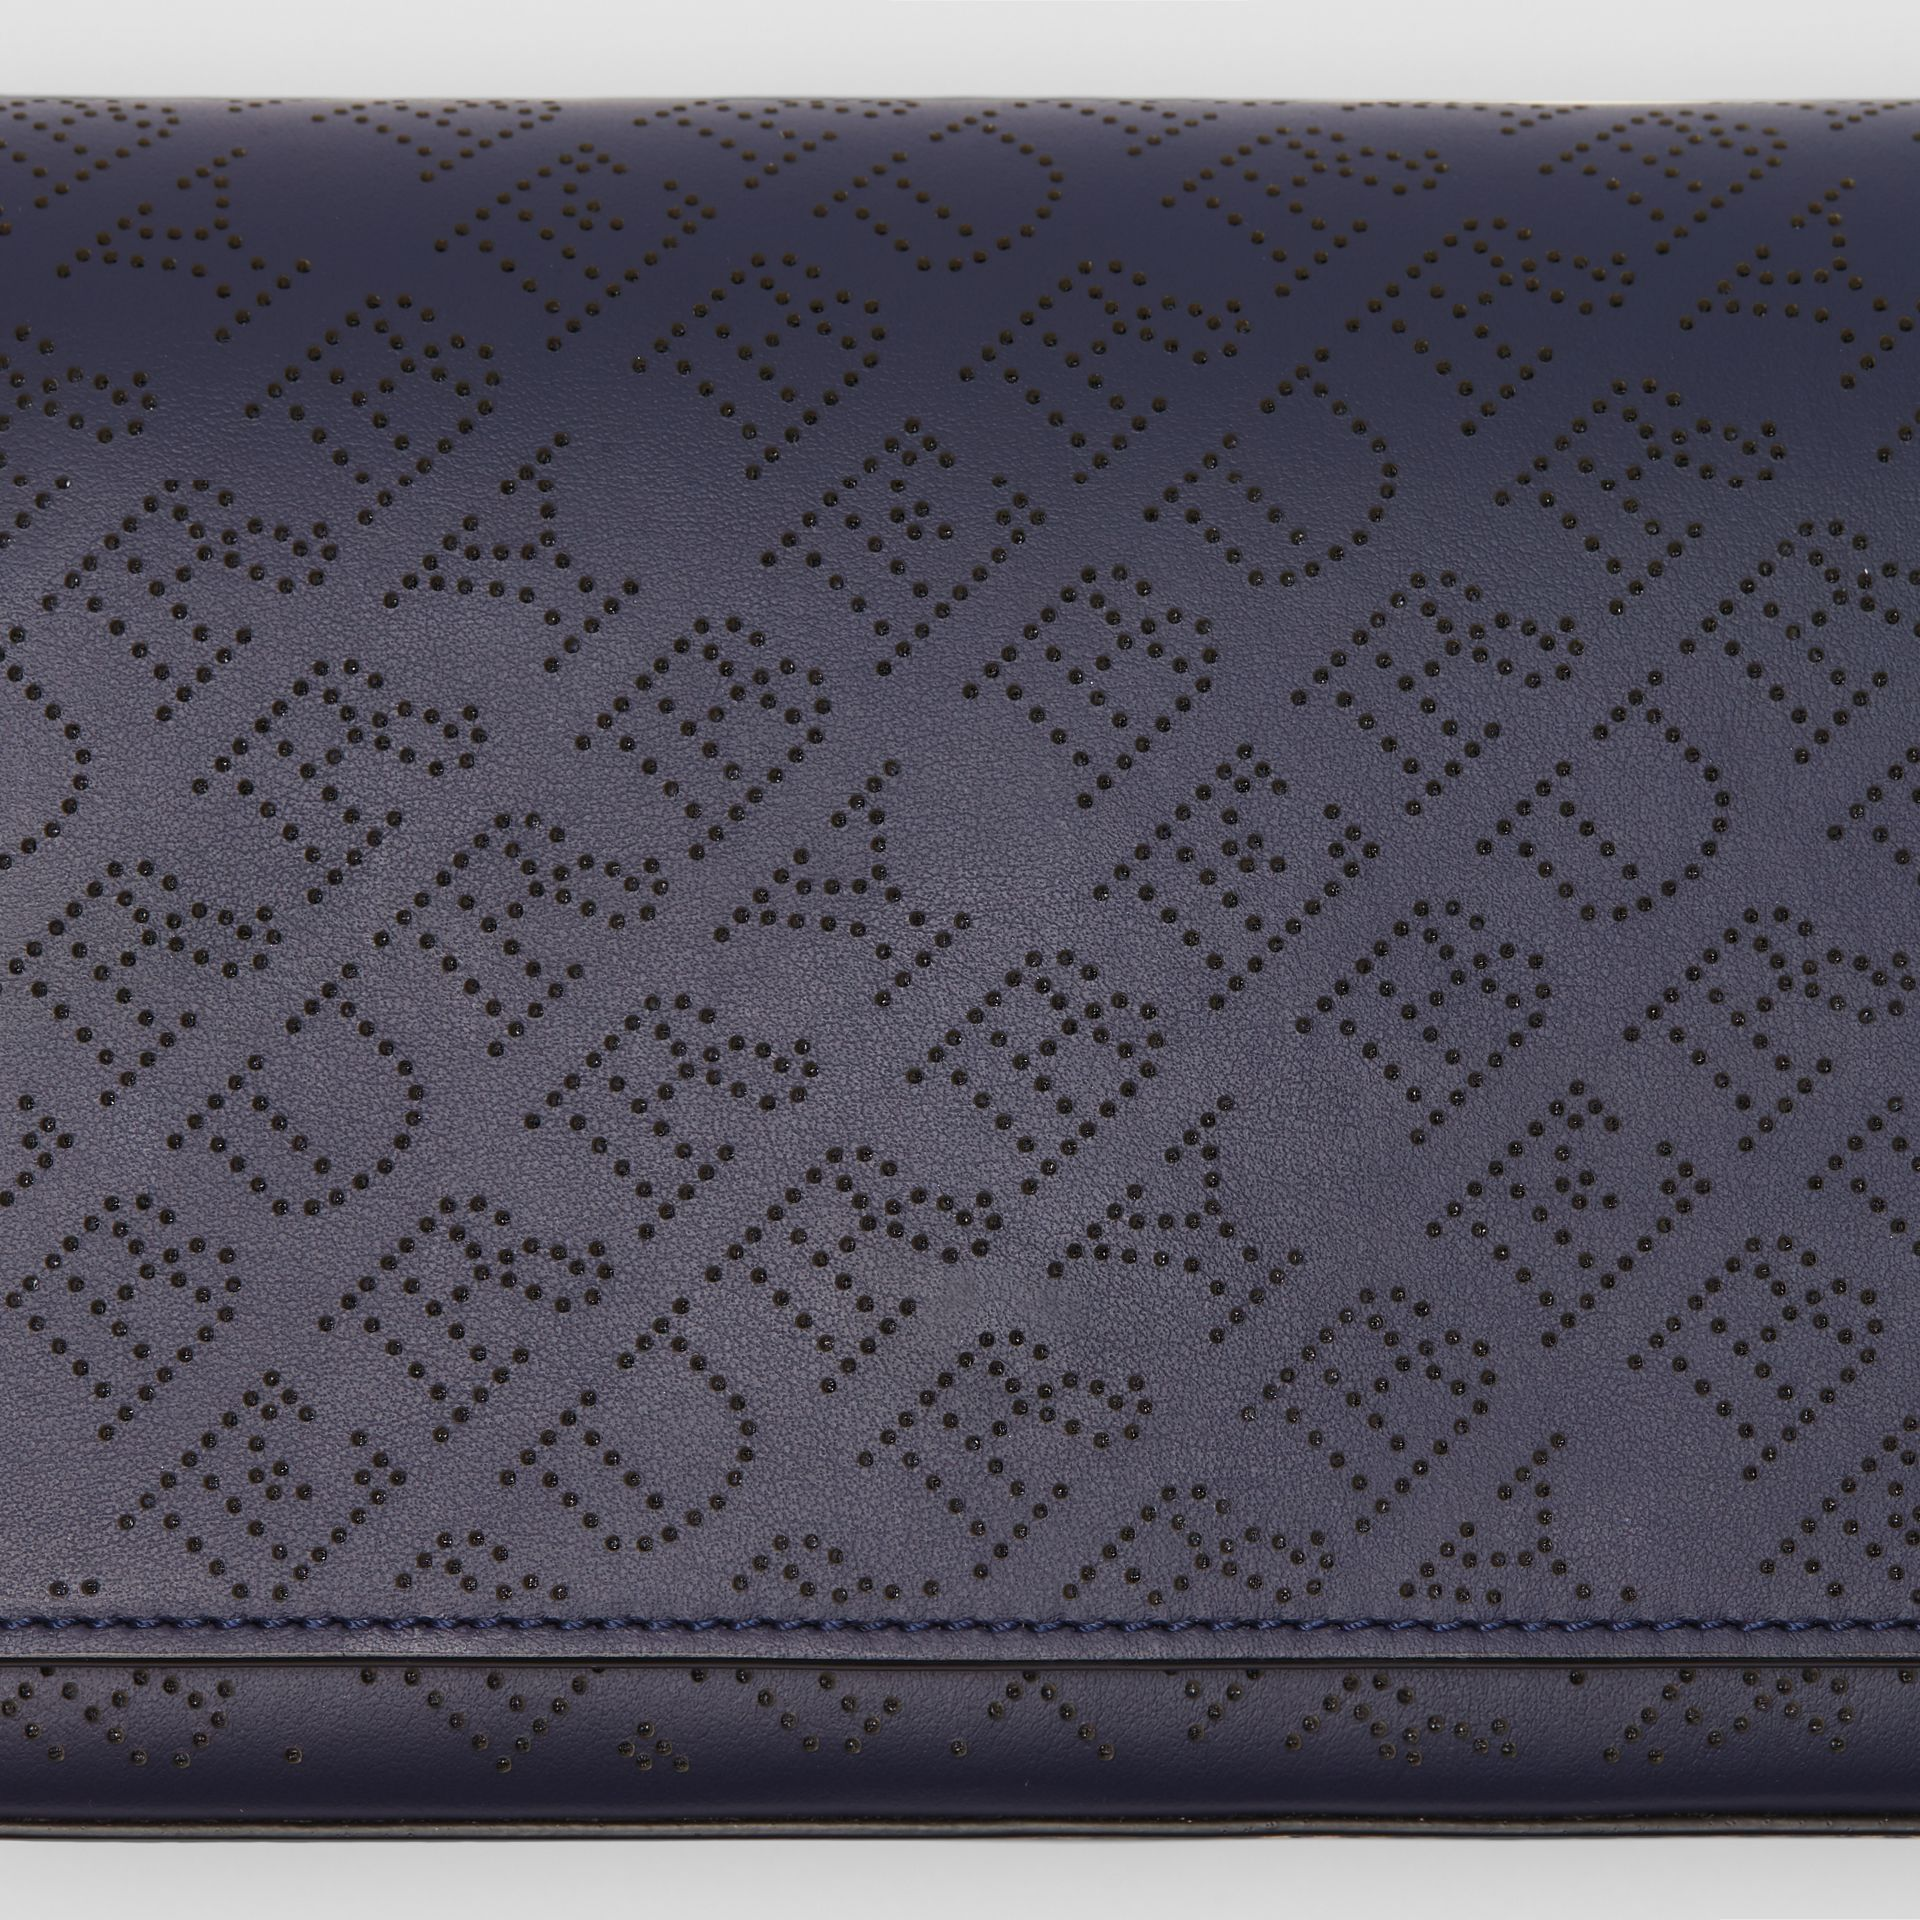 Perforated Logo Leather Wallet with Detachable Strap in Navy - Women | Burberry Australia - gallery image 1